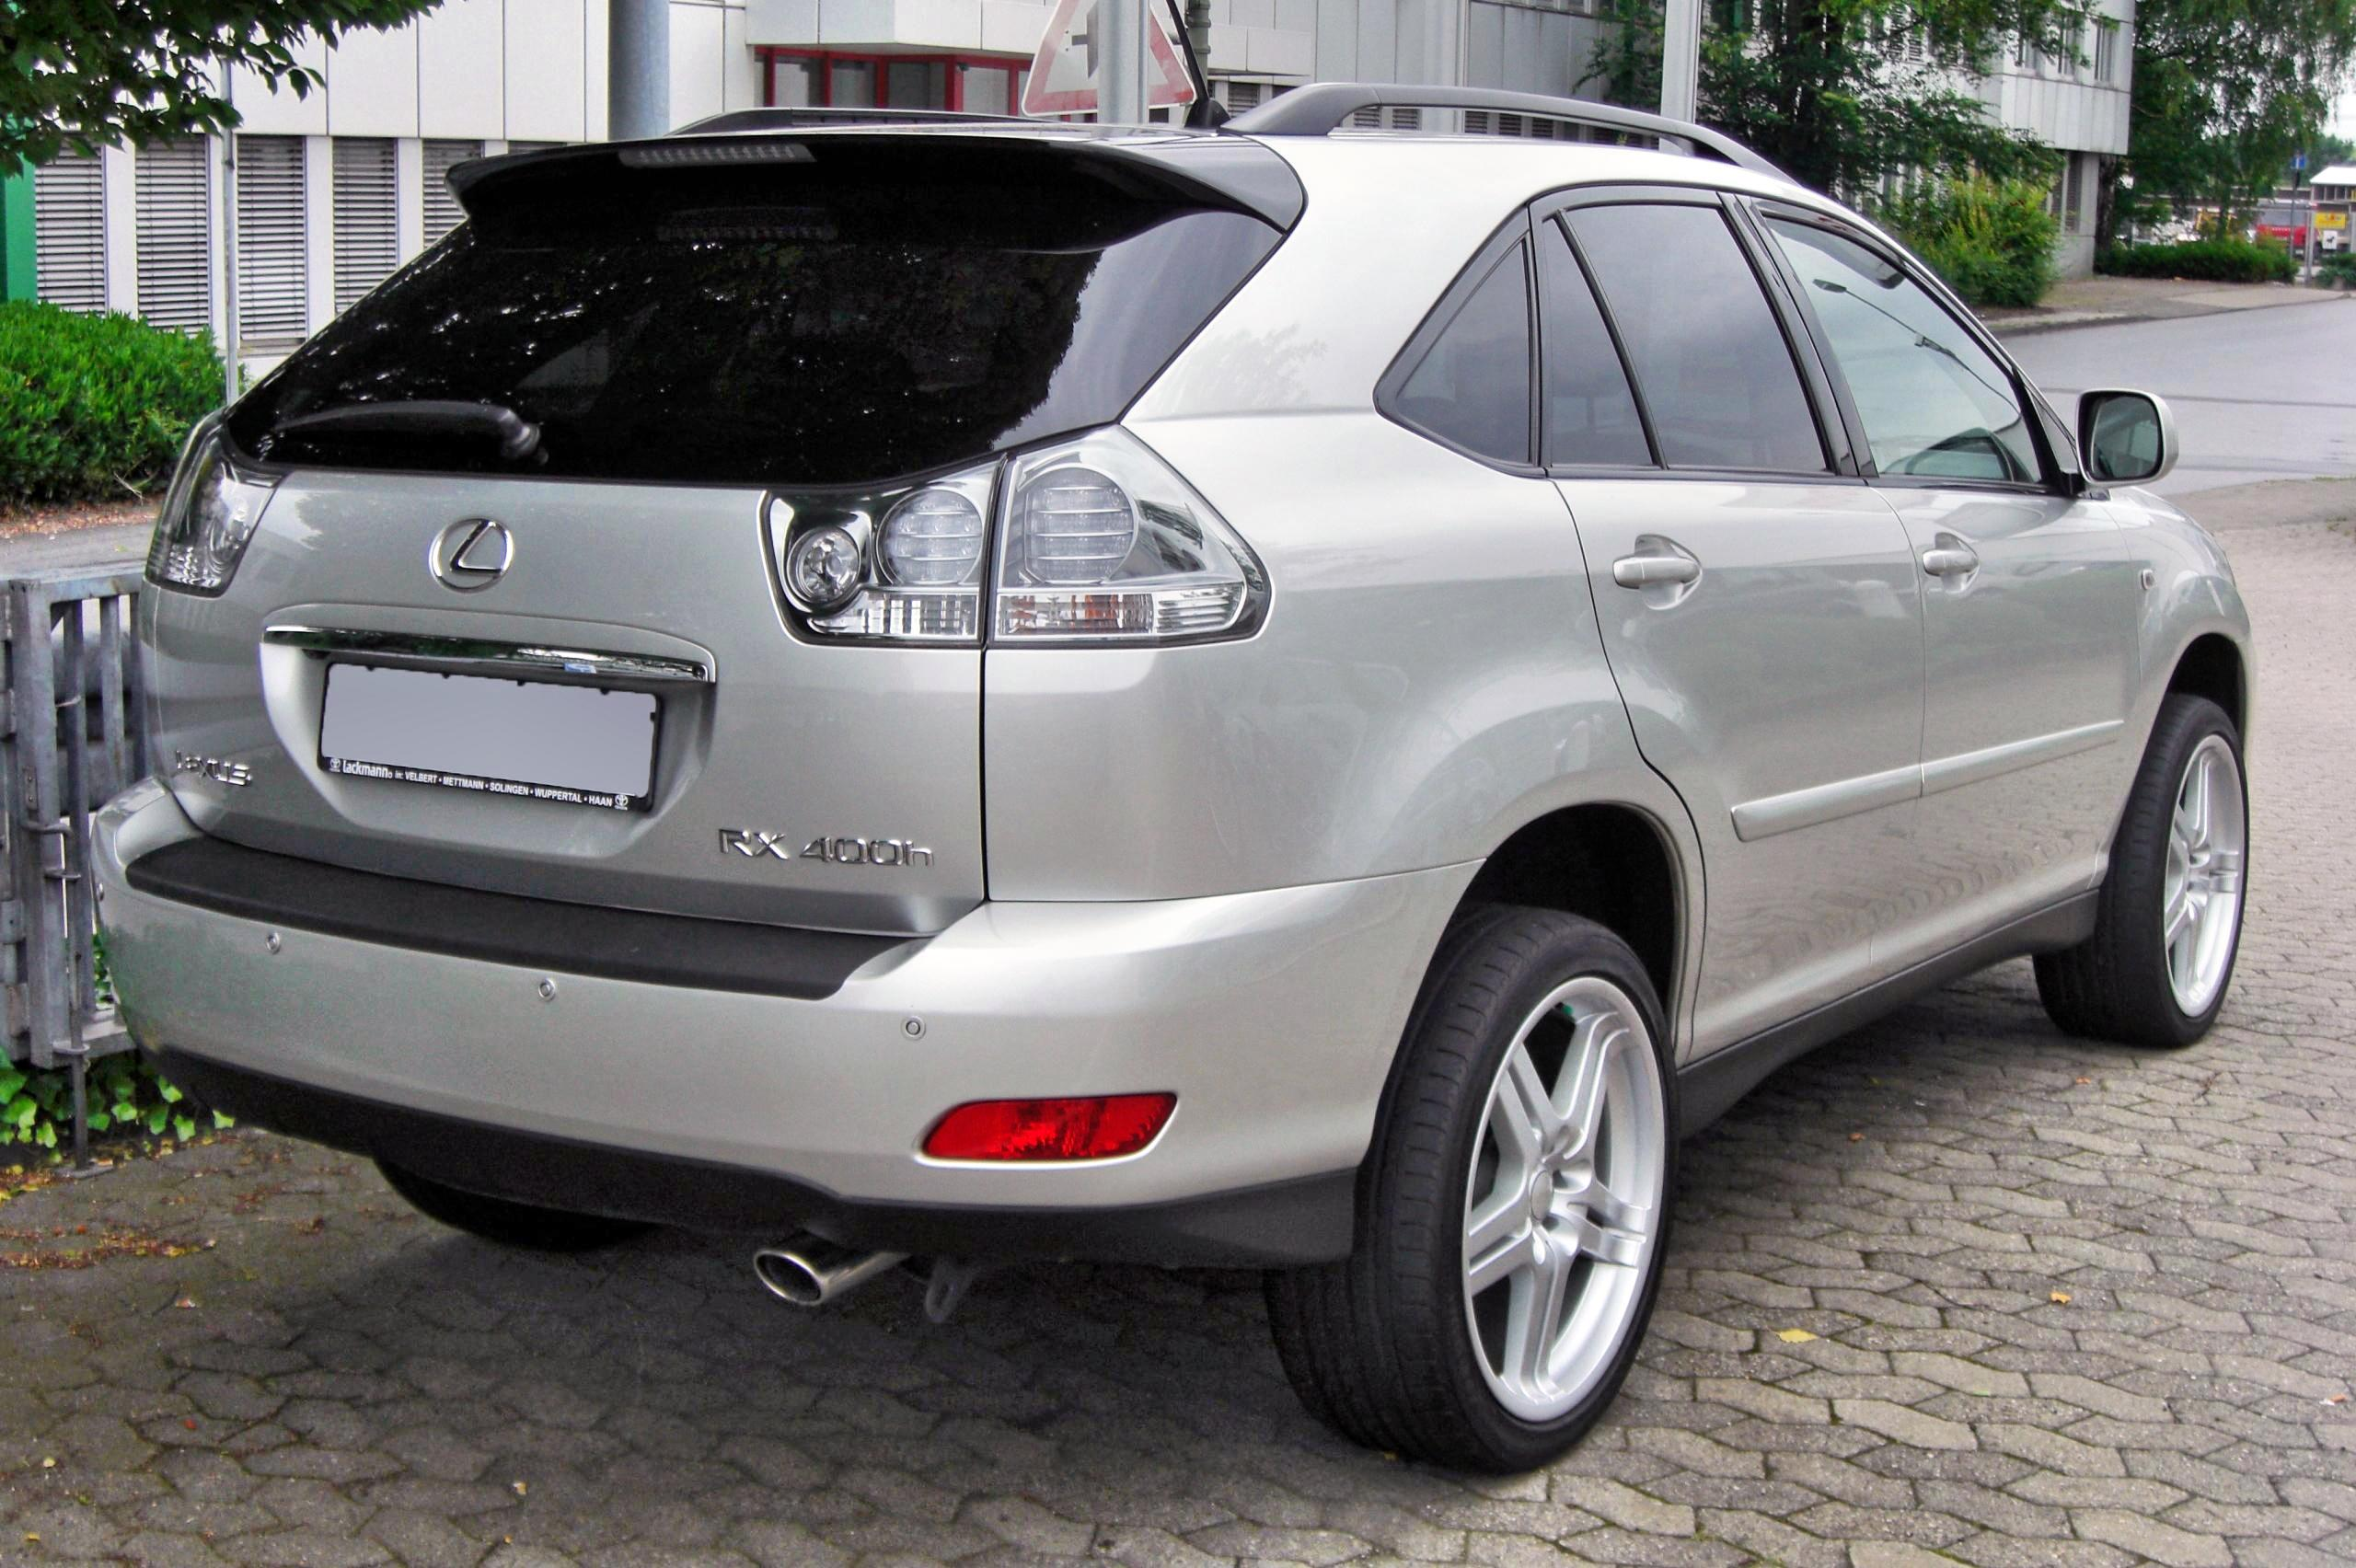 File Lexus Rx 400h Ii 20090620 Rear Jpg Wikimedia Commons